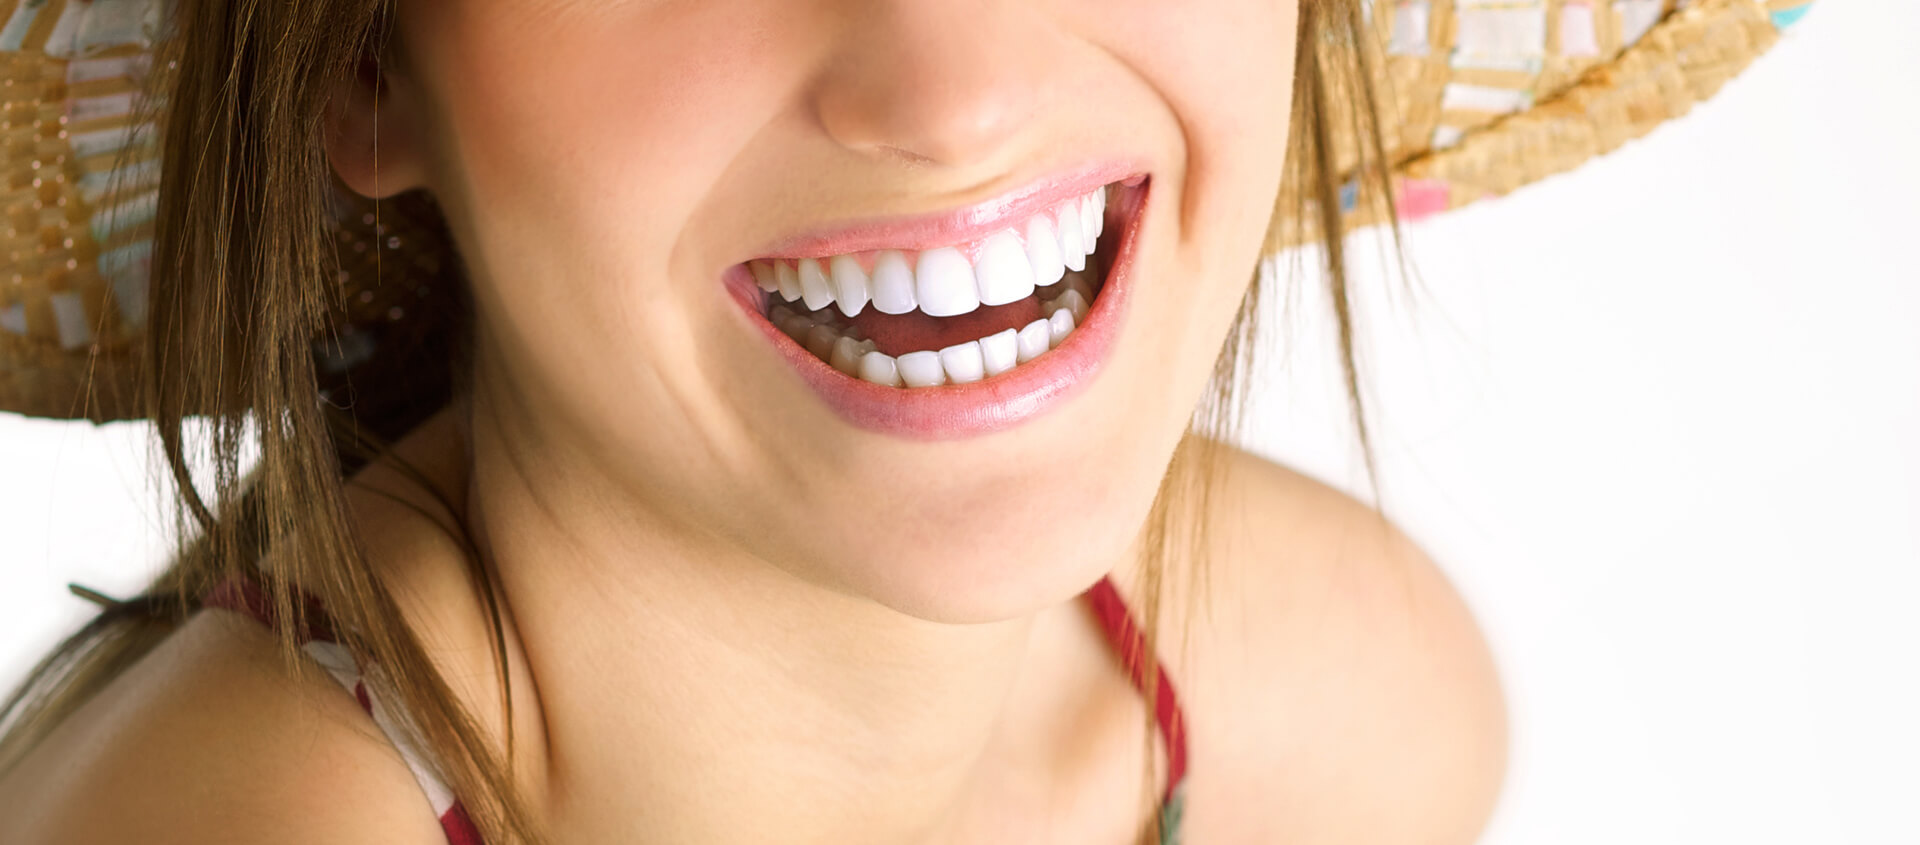 What Are the Benefits of Dental Veneers in Middletown Area?